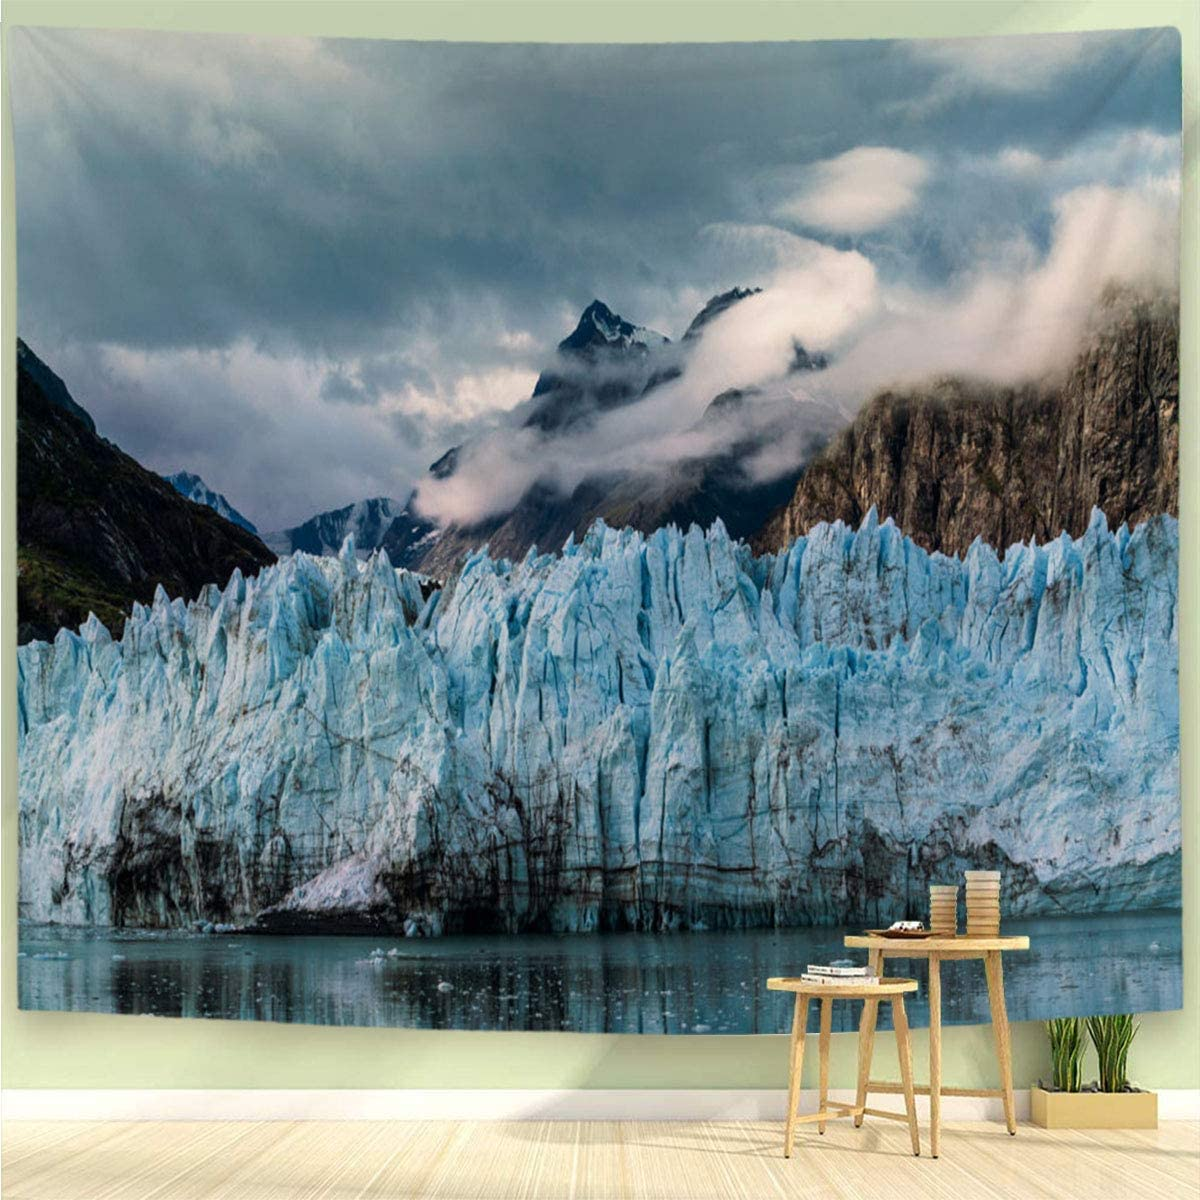 BEIVIVI Mountain Tapestry Colorful Art Design Tapestry Harvard Glacier in Front of A Cloud Covered Mountain Peak Polyester Fabric Tapestries for Bedroom Living Room Dorm,6040in